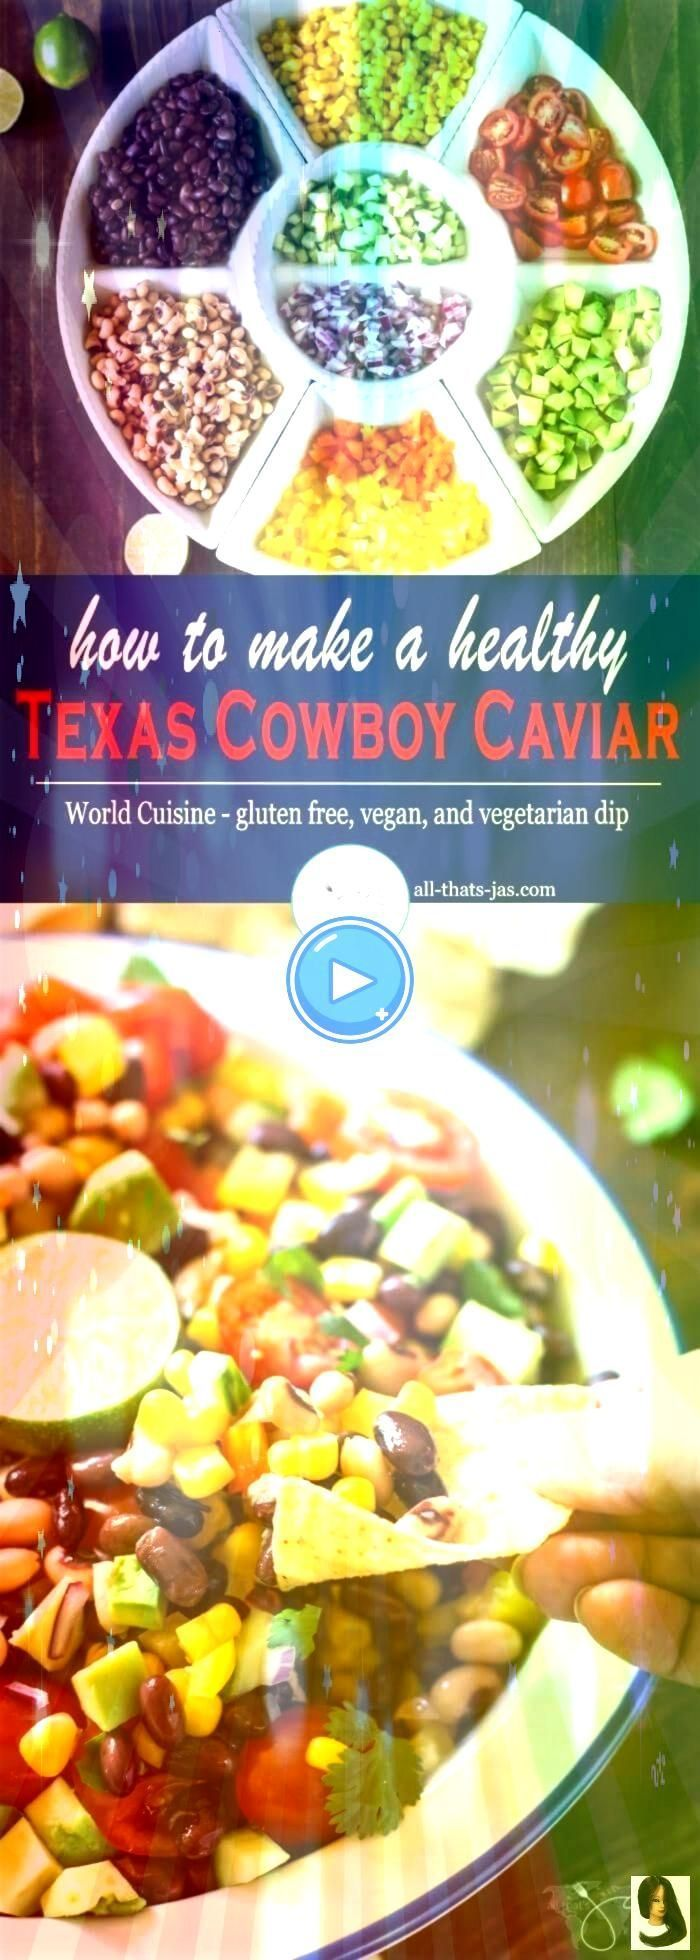 to Make a Healthy Texas Cowboy Caviar How to Make a Healthy Texas Cowboy Caviar    This gluten